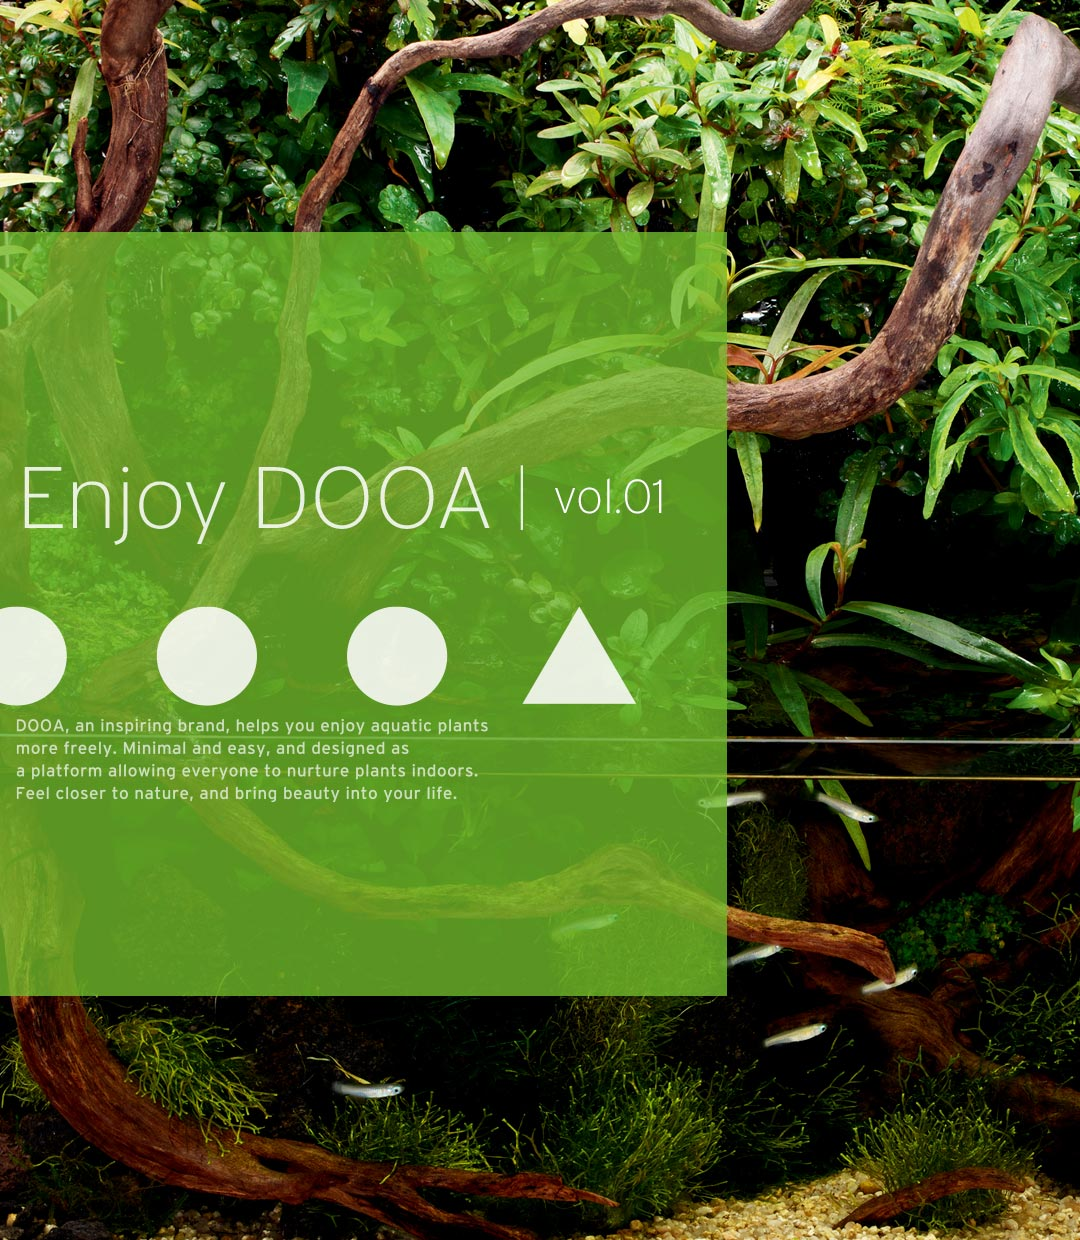 Enjoy DOOA vol.01